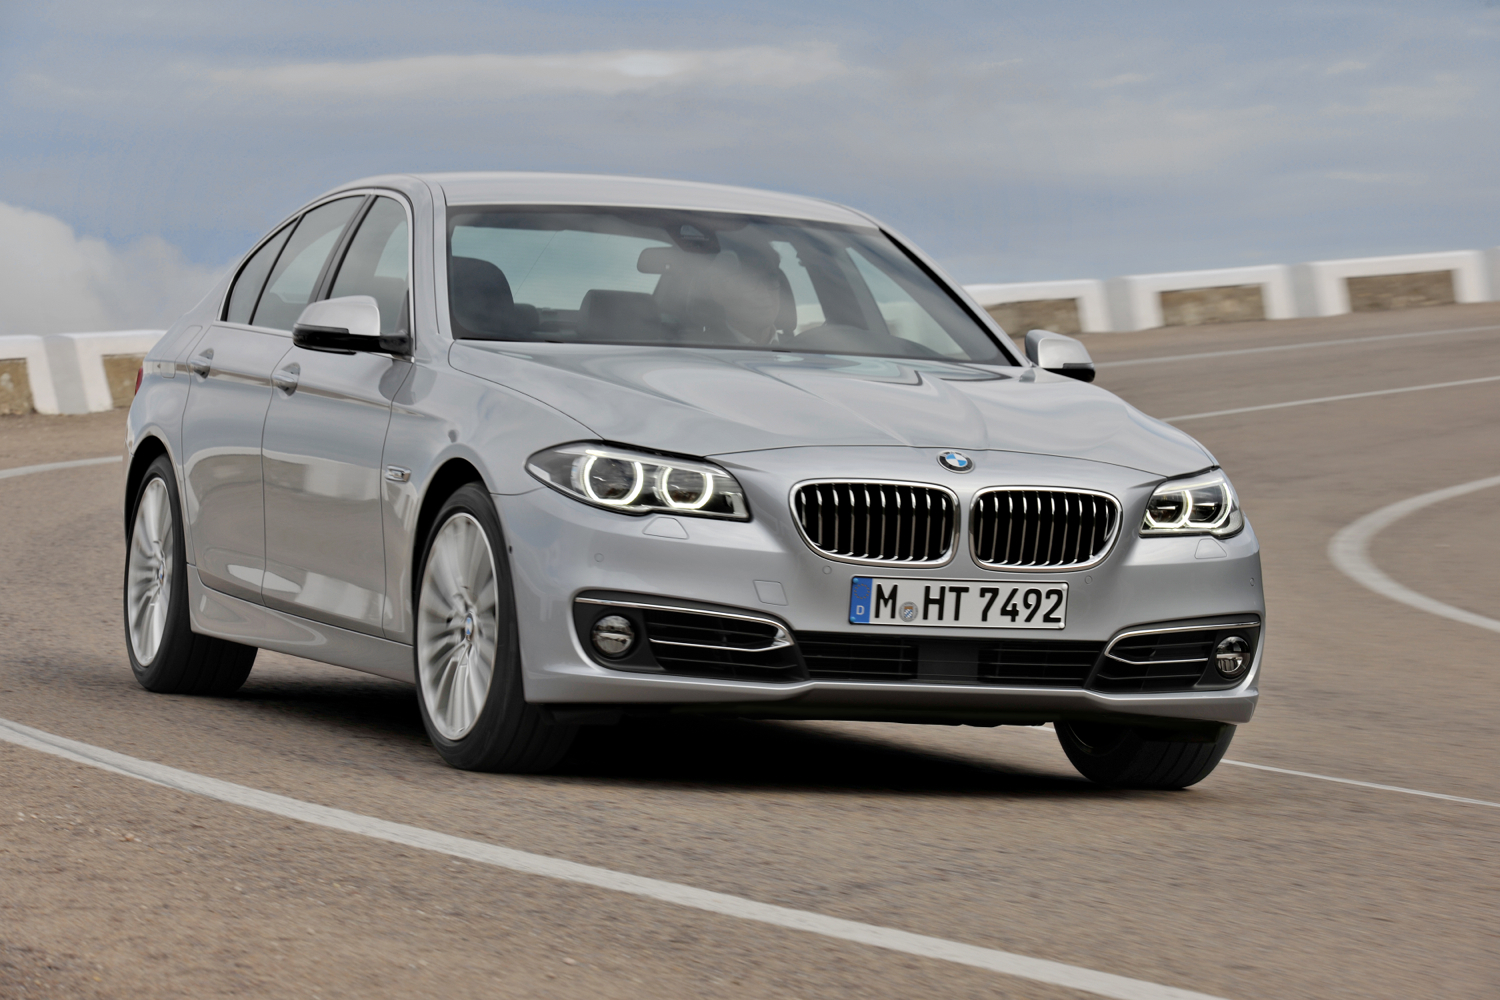 2015 BMW 535d Named 'Diesel Car Of The Year' By Diesel Driver Site